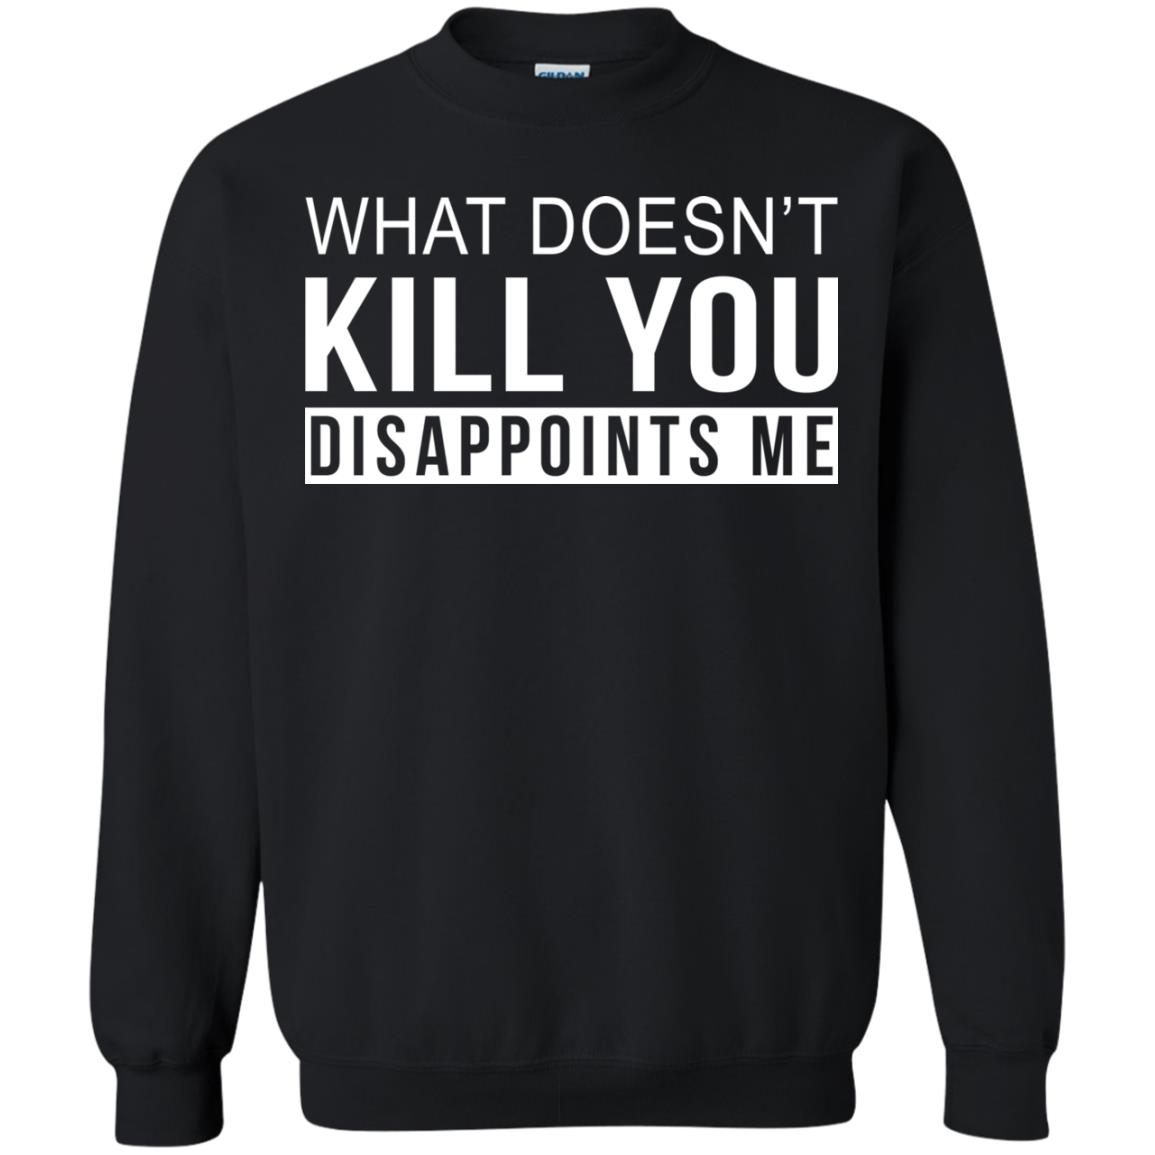 image 268 - What Doesn't Kill You Disappoints Shirt, Hoodie, Sweatshirt